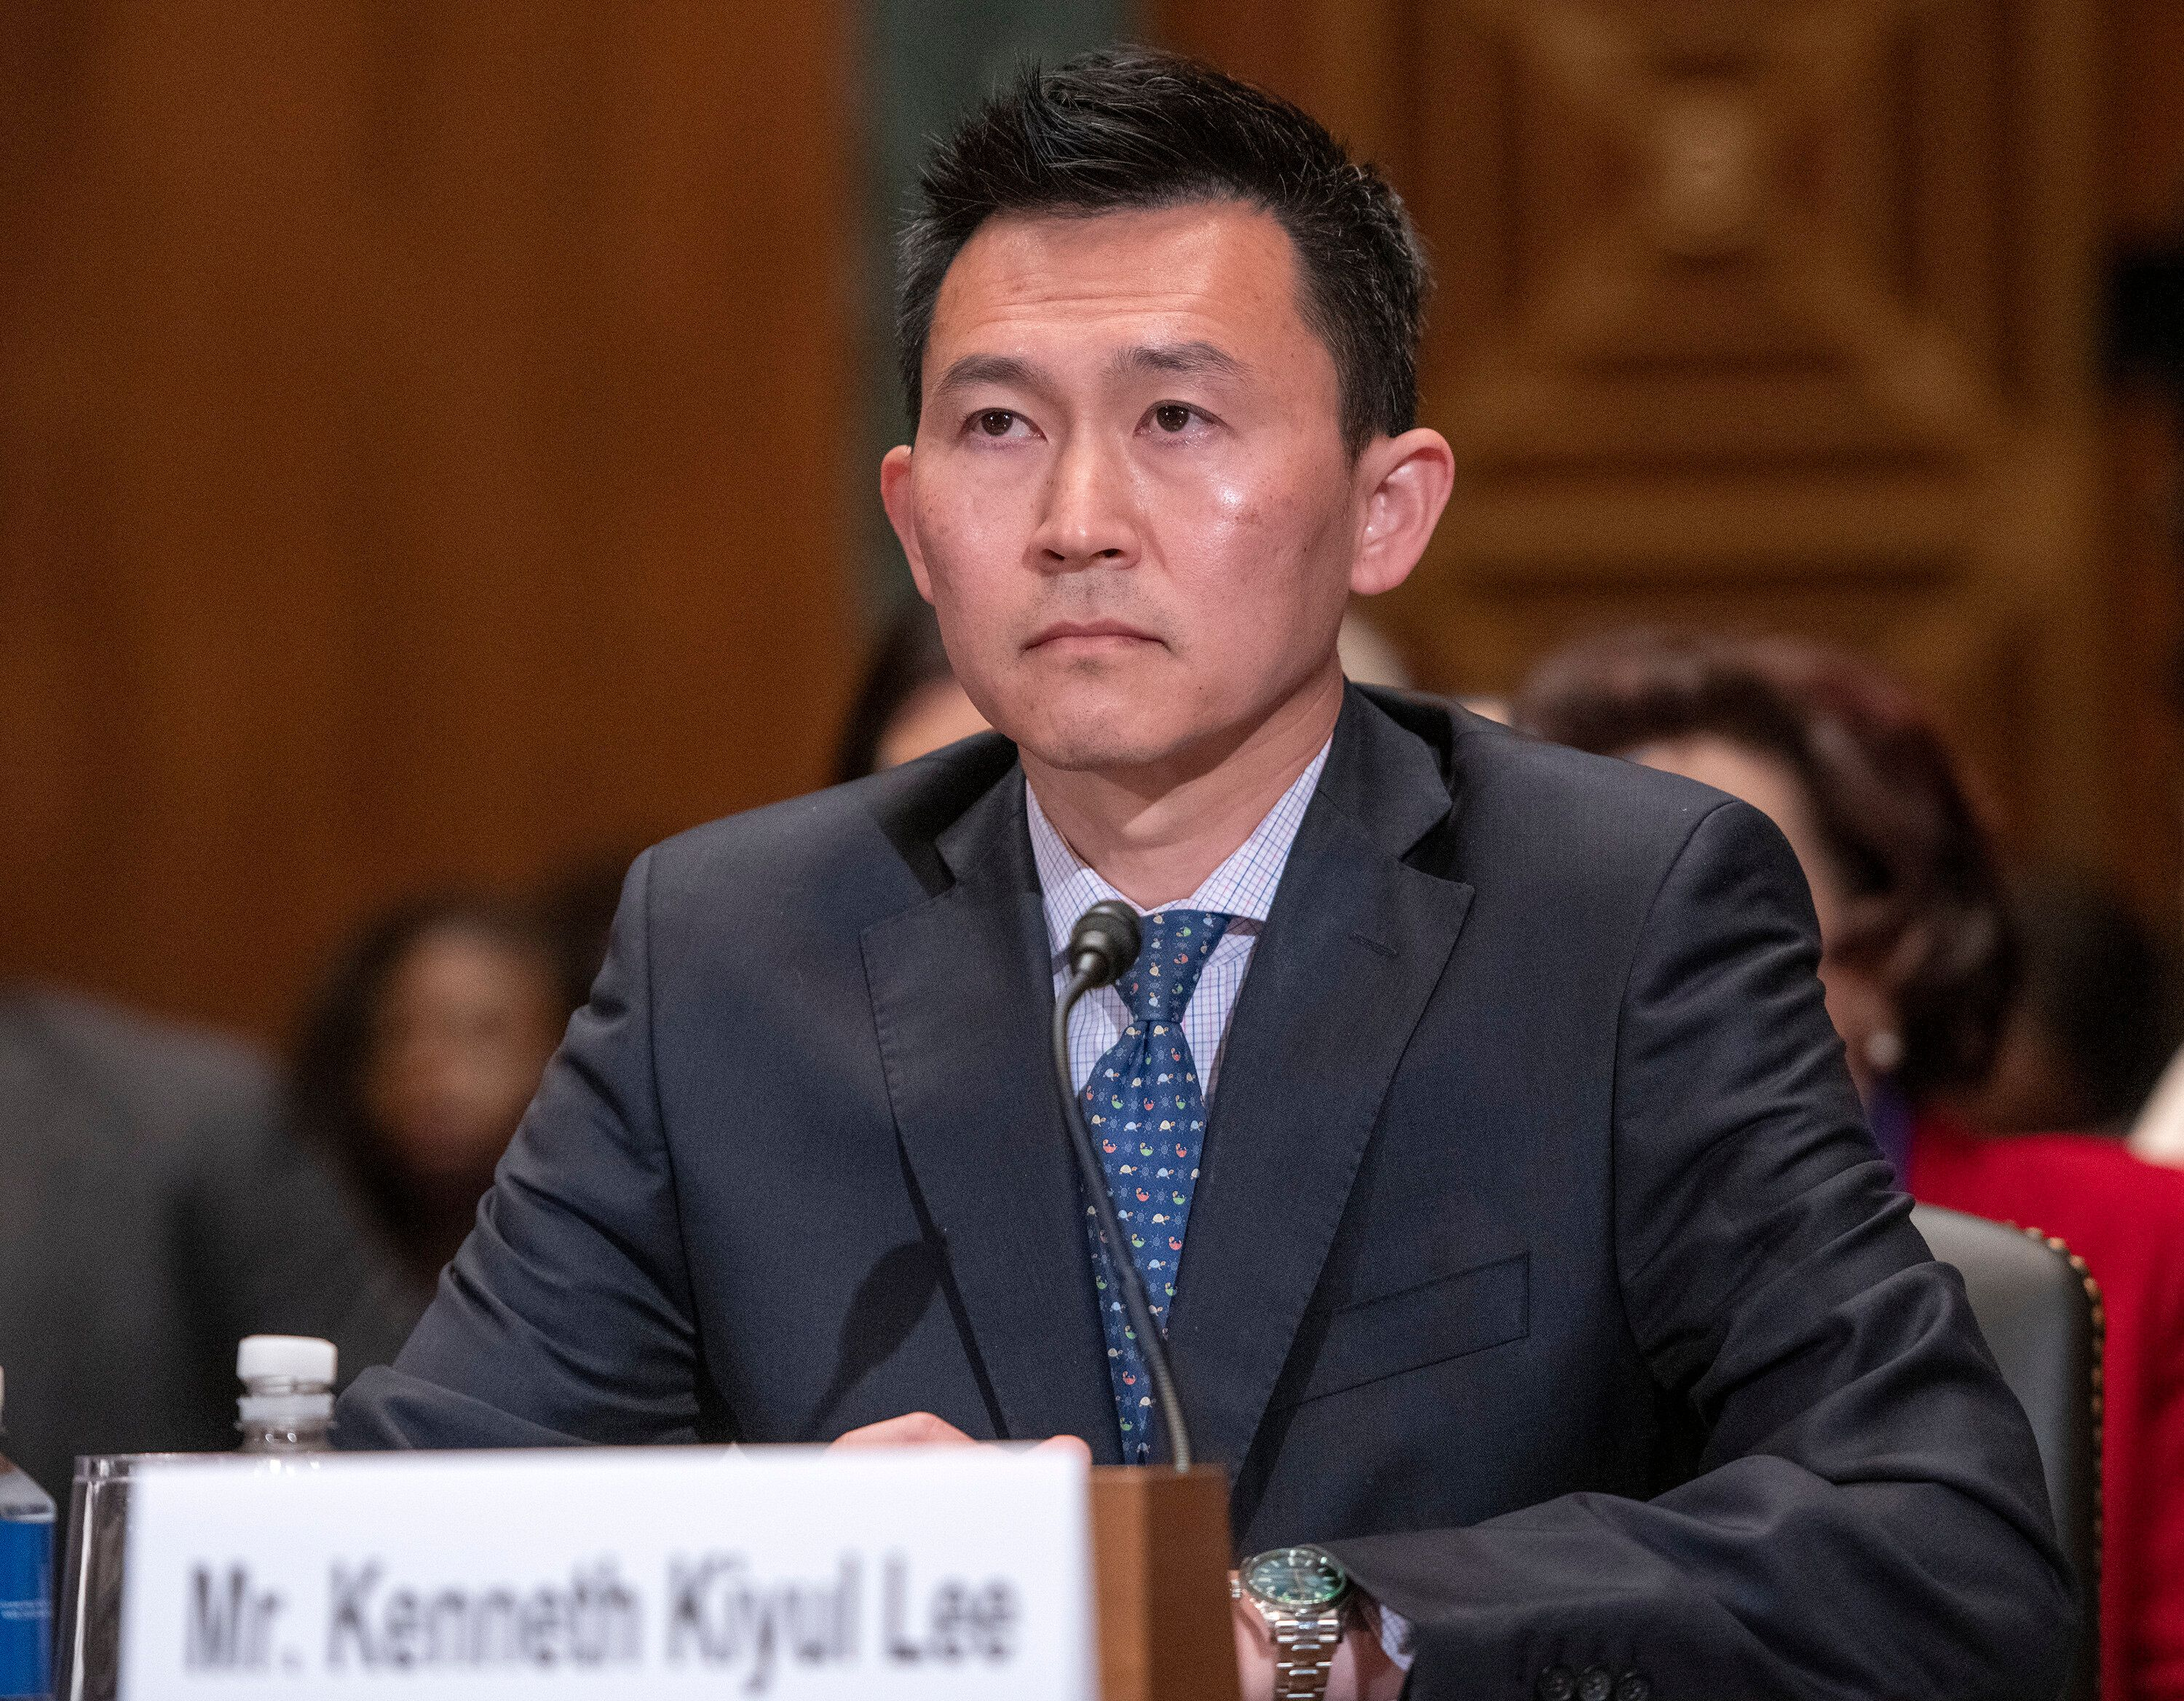 Kenneth Lee wrote a lot of questionable articles in college about civil rights and sexism – and...